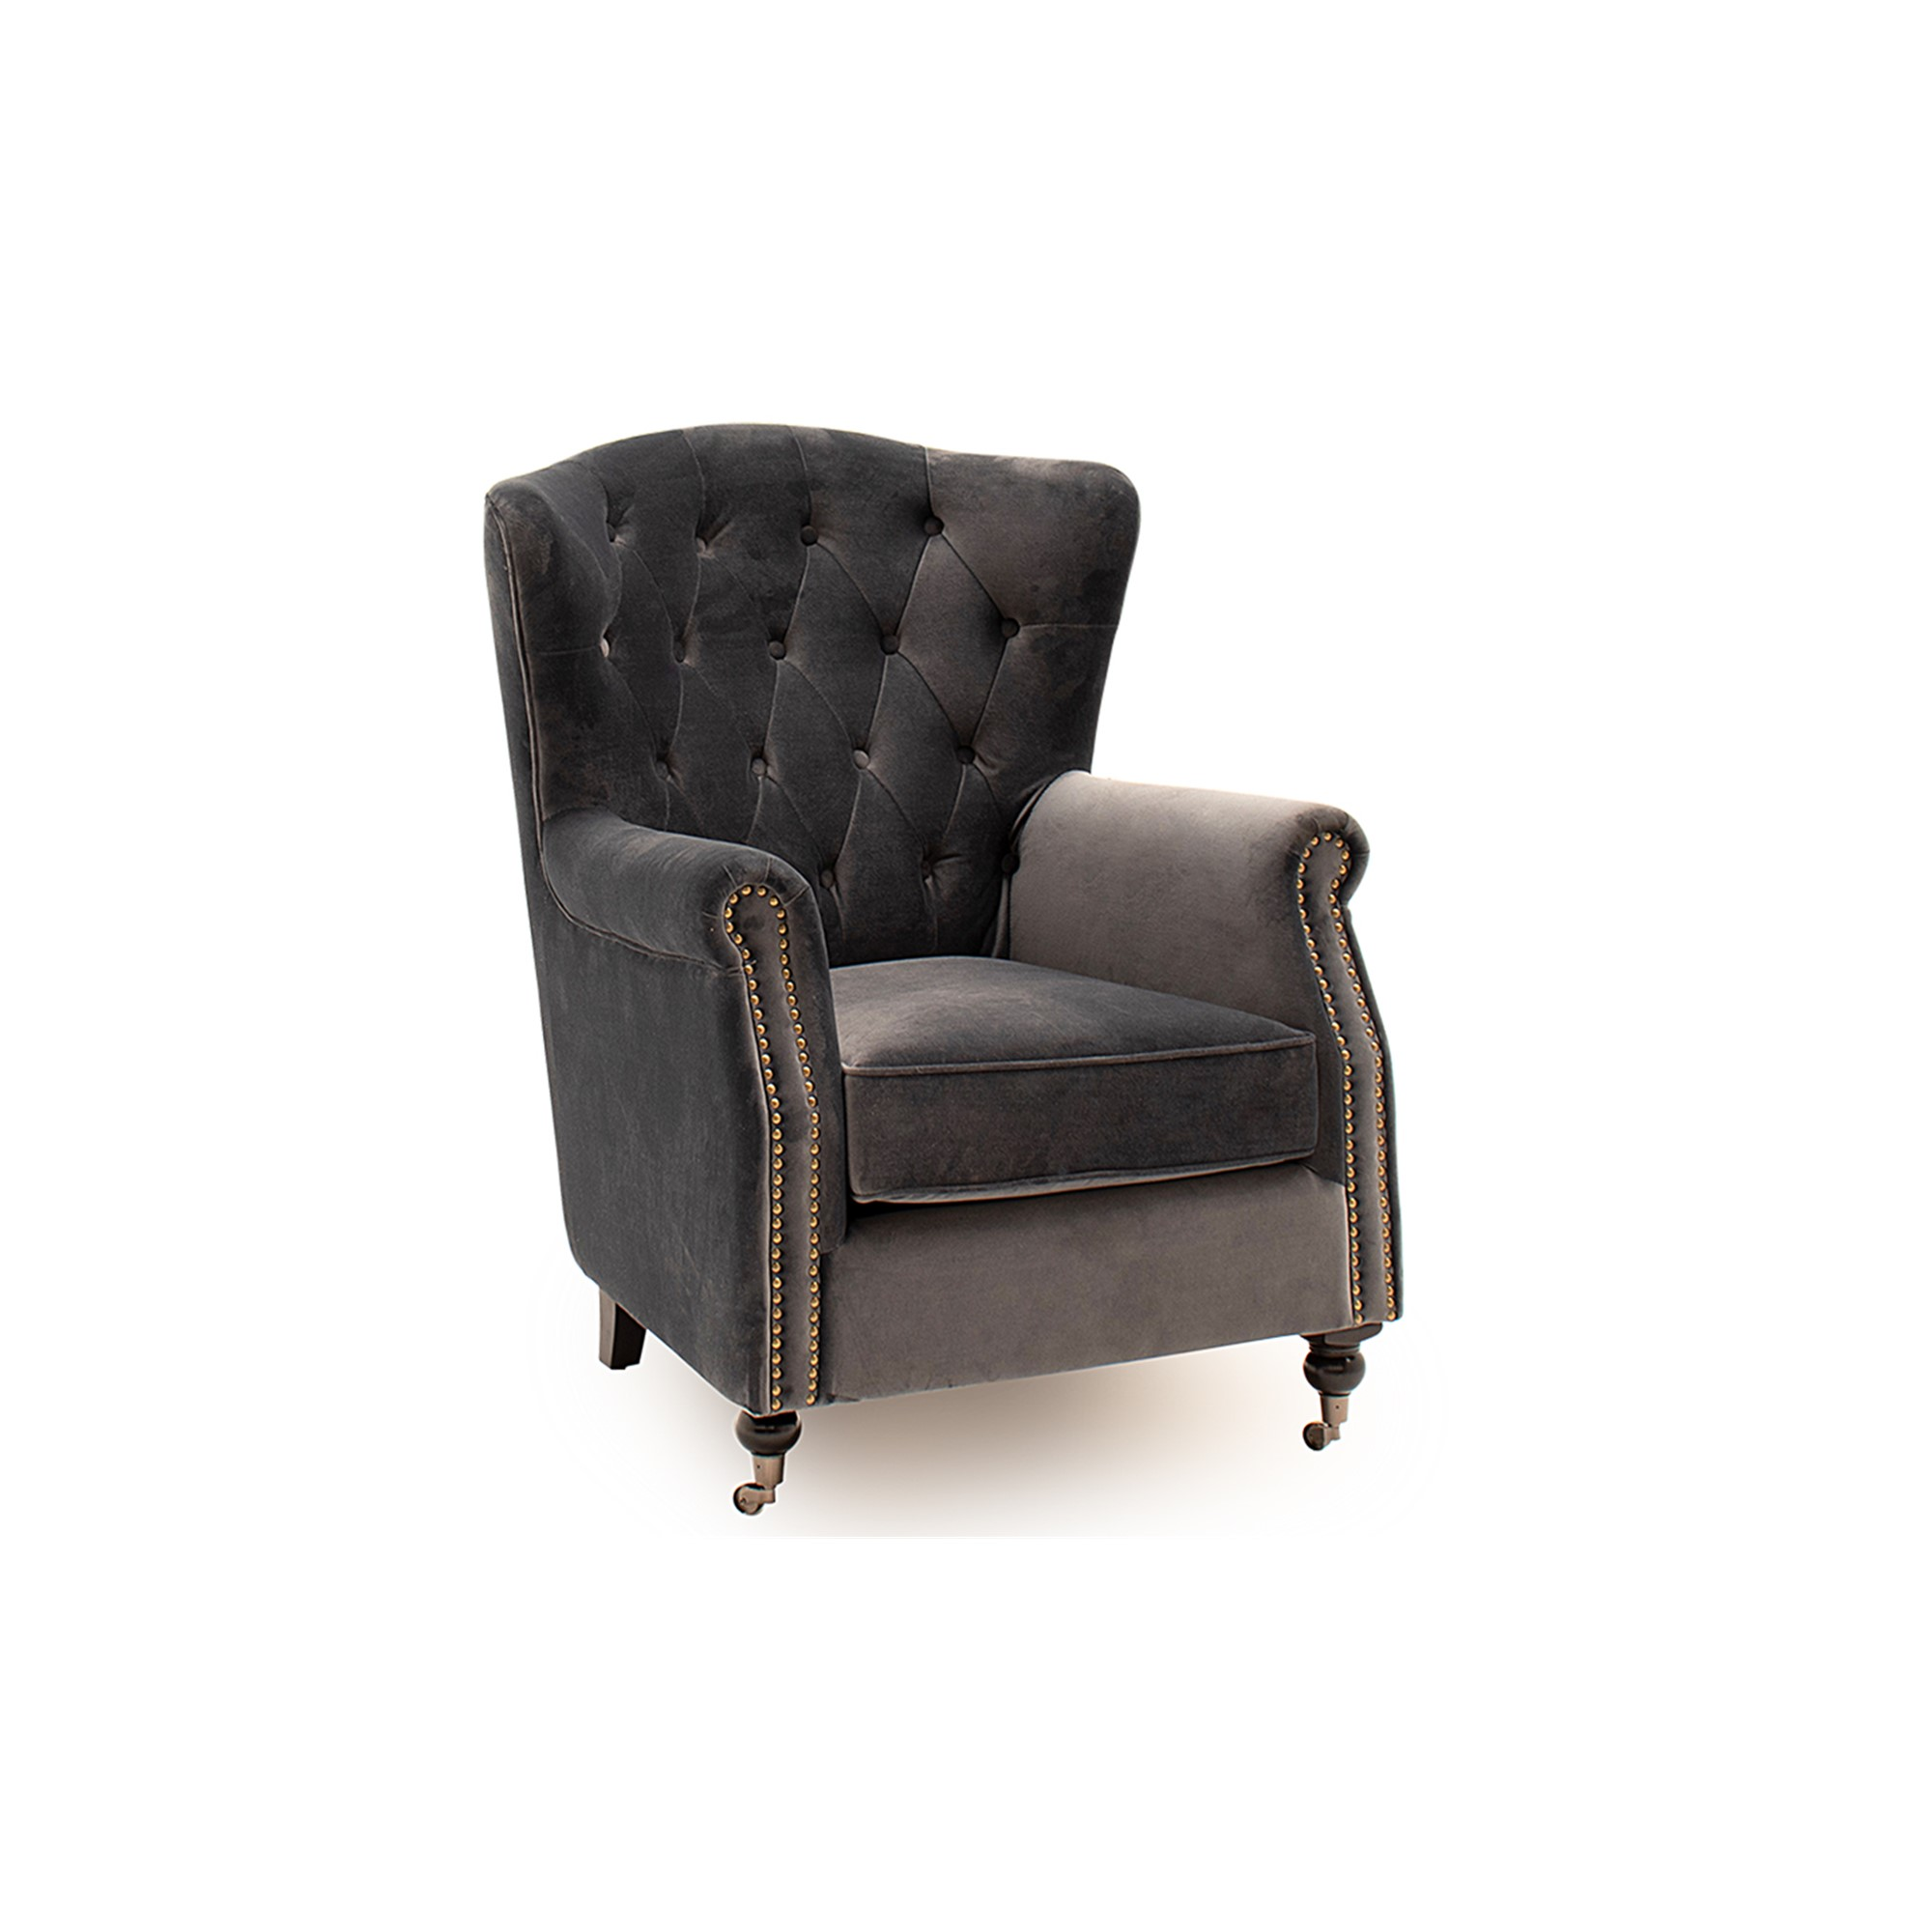 Hamlet Wingback Chair Grey